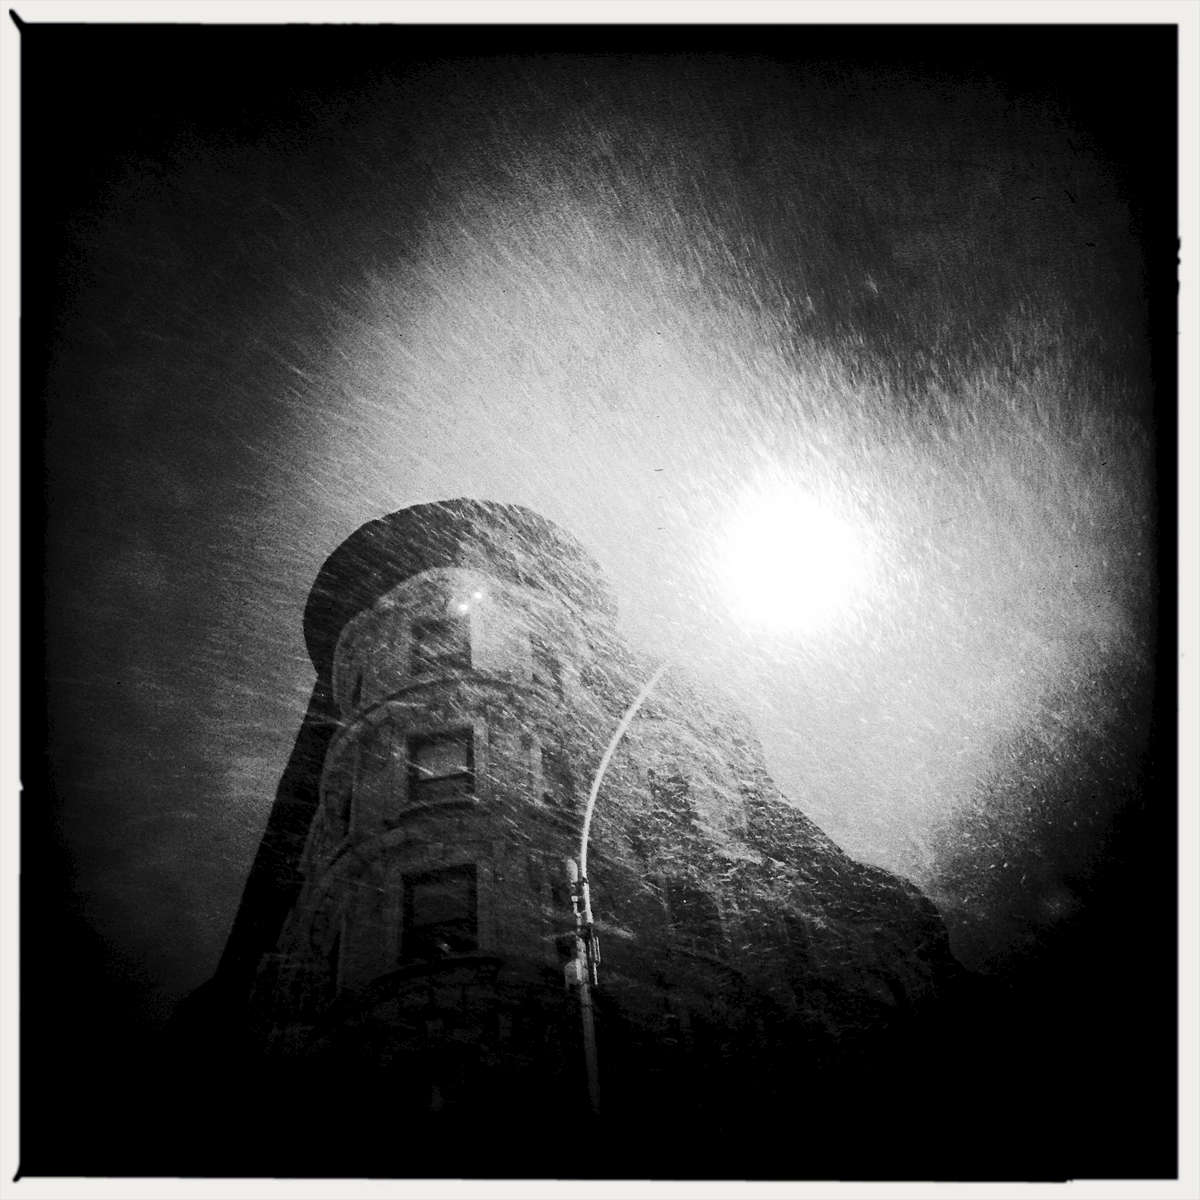 Blizzard in Harlem.